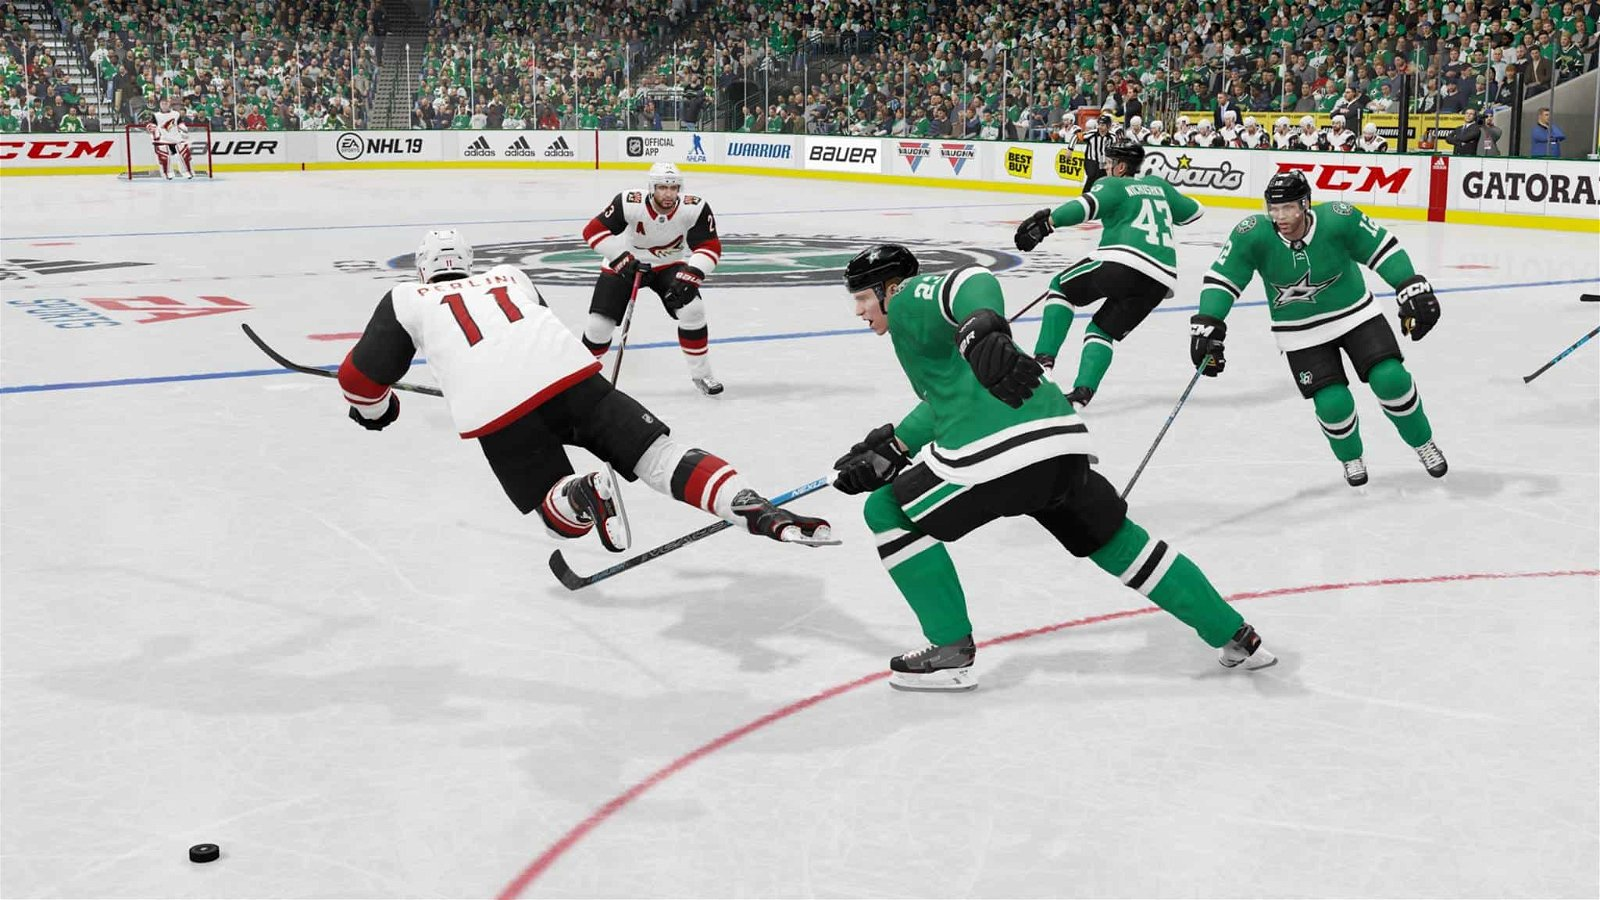 Nhl 19 (Ps4) Review 4